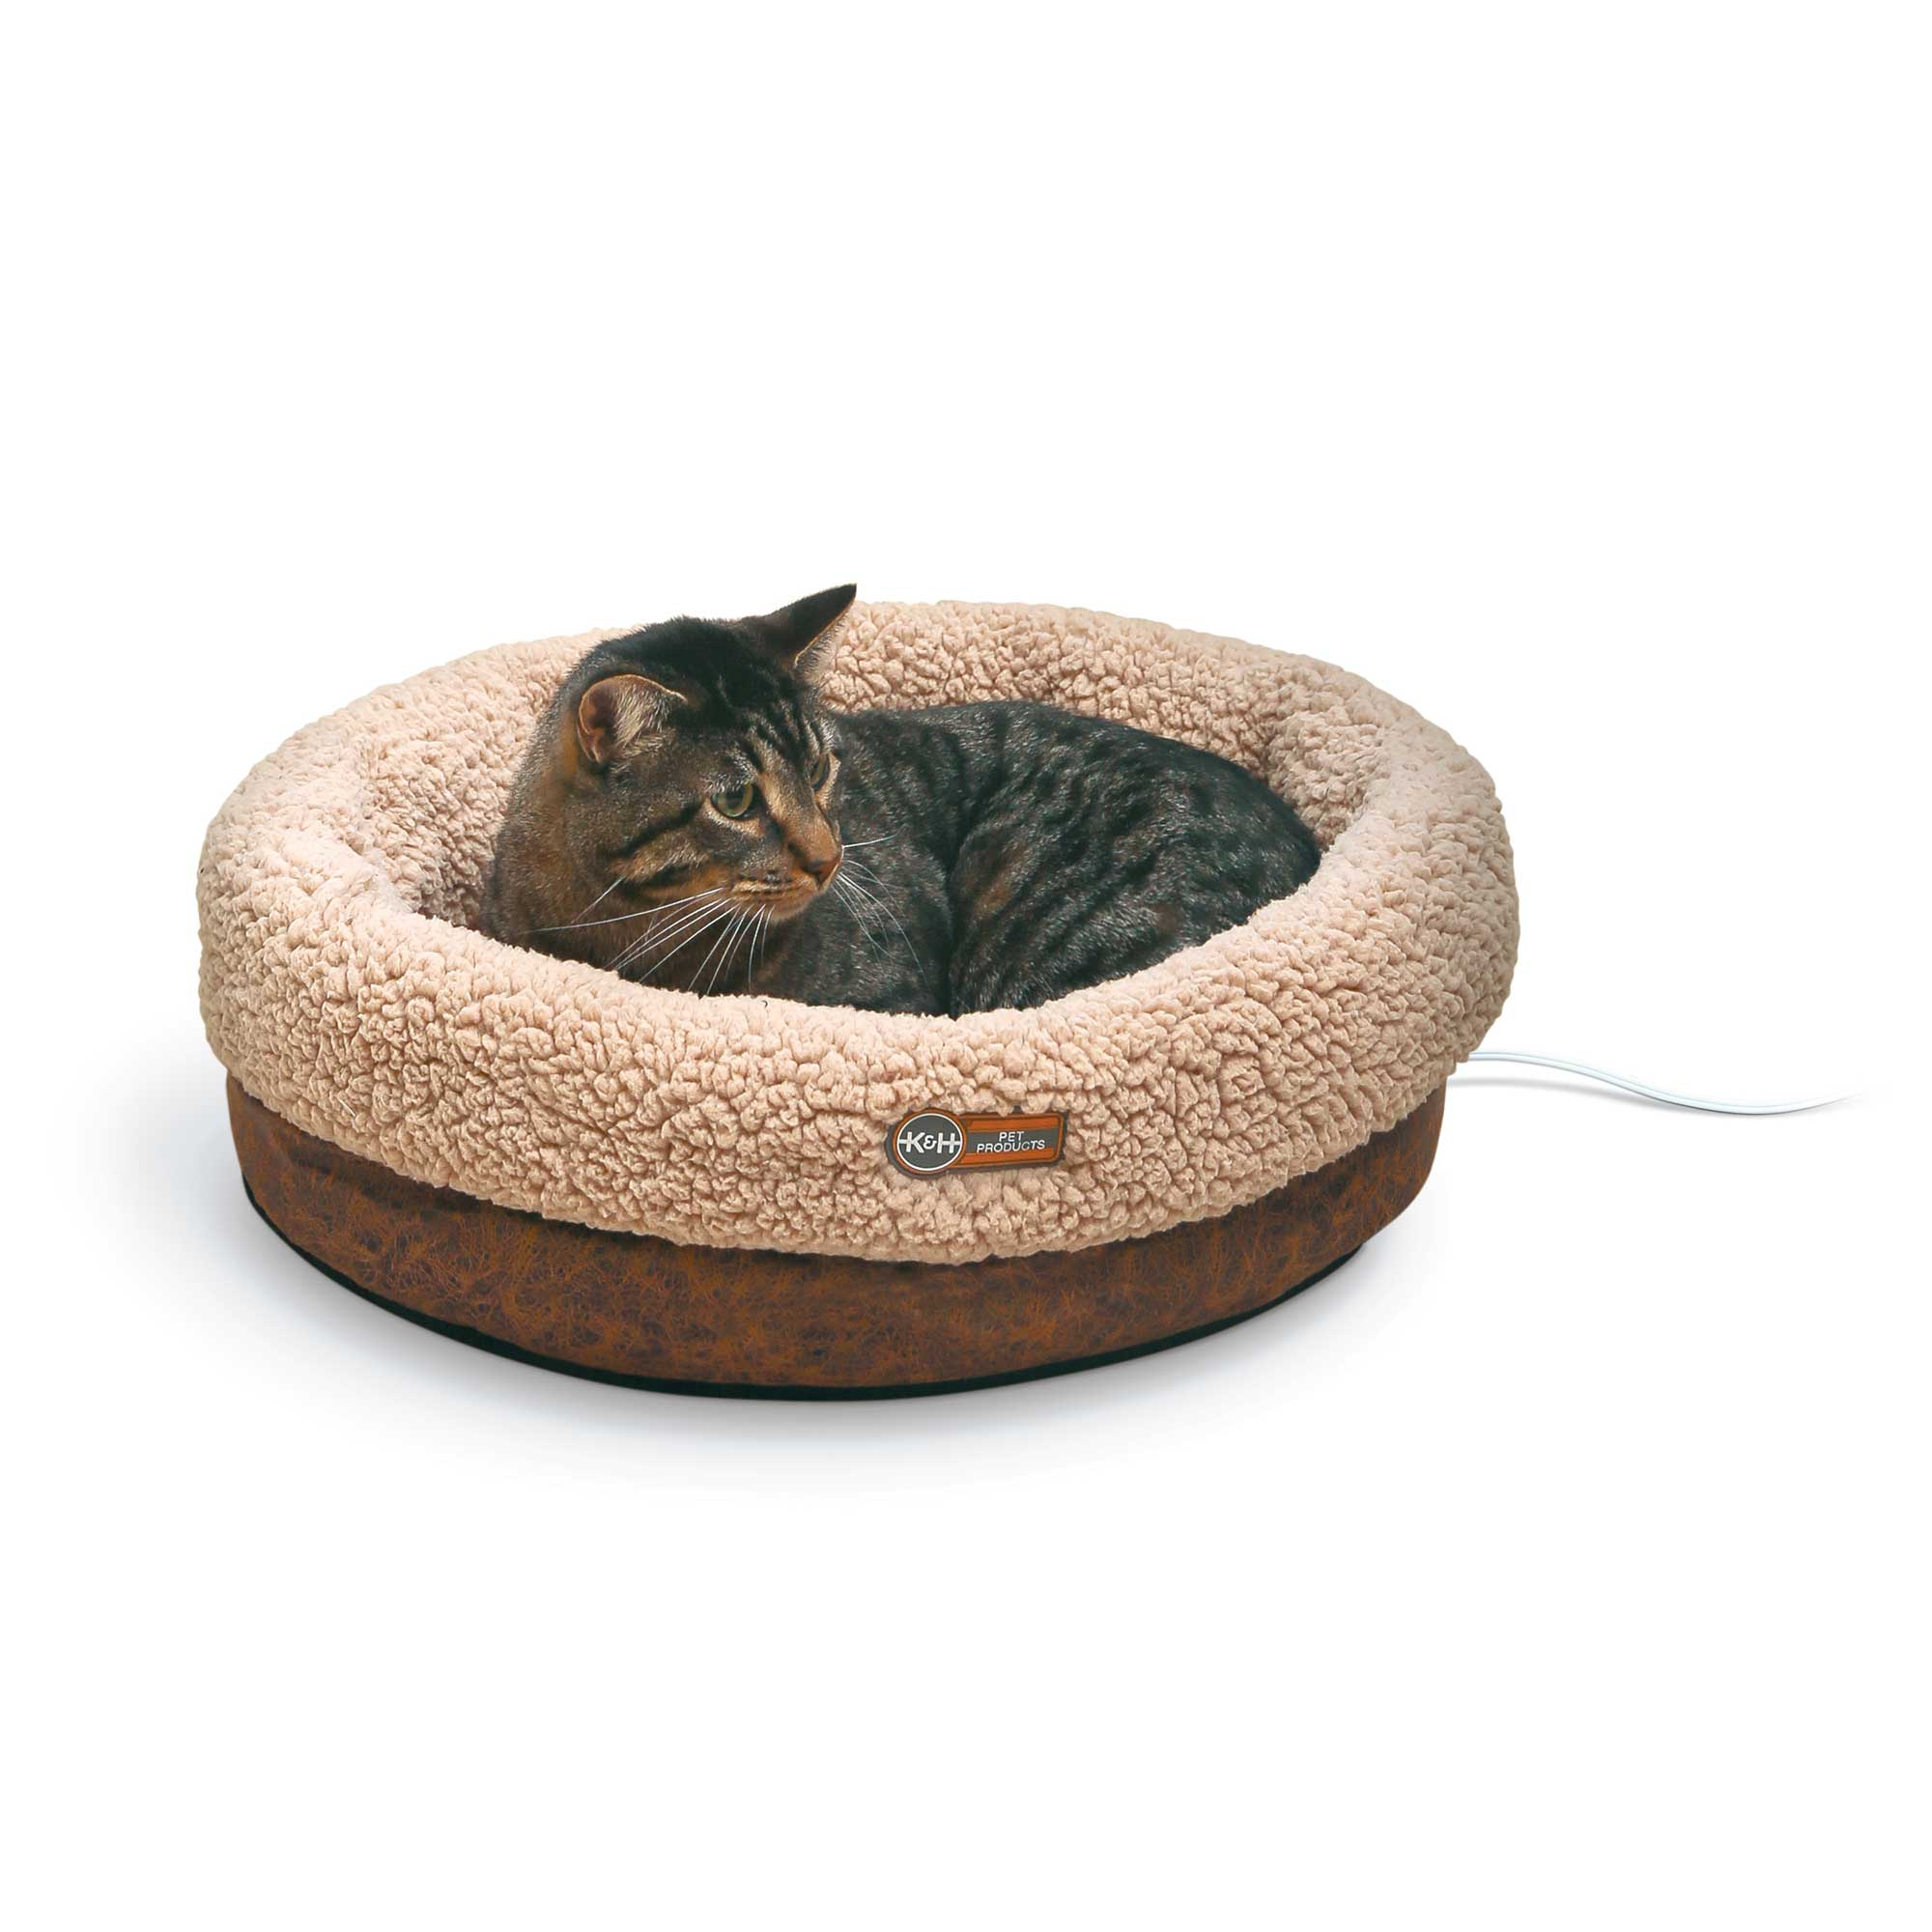 "K&H Pet Products Thermo-Snuggle Cup Pet Bed Bomber Chocolate 14"" x 18"" x 7"""